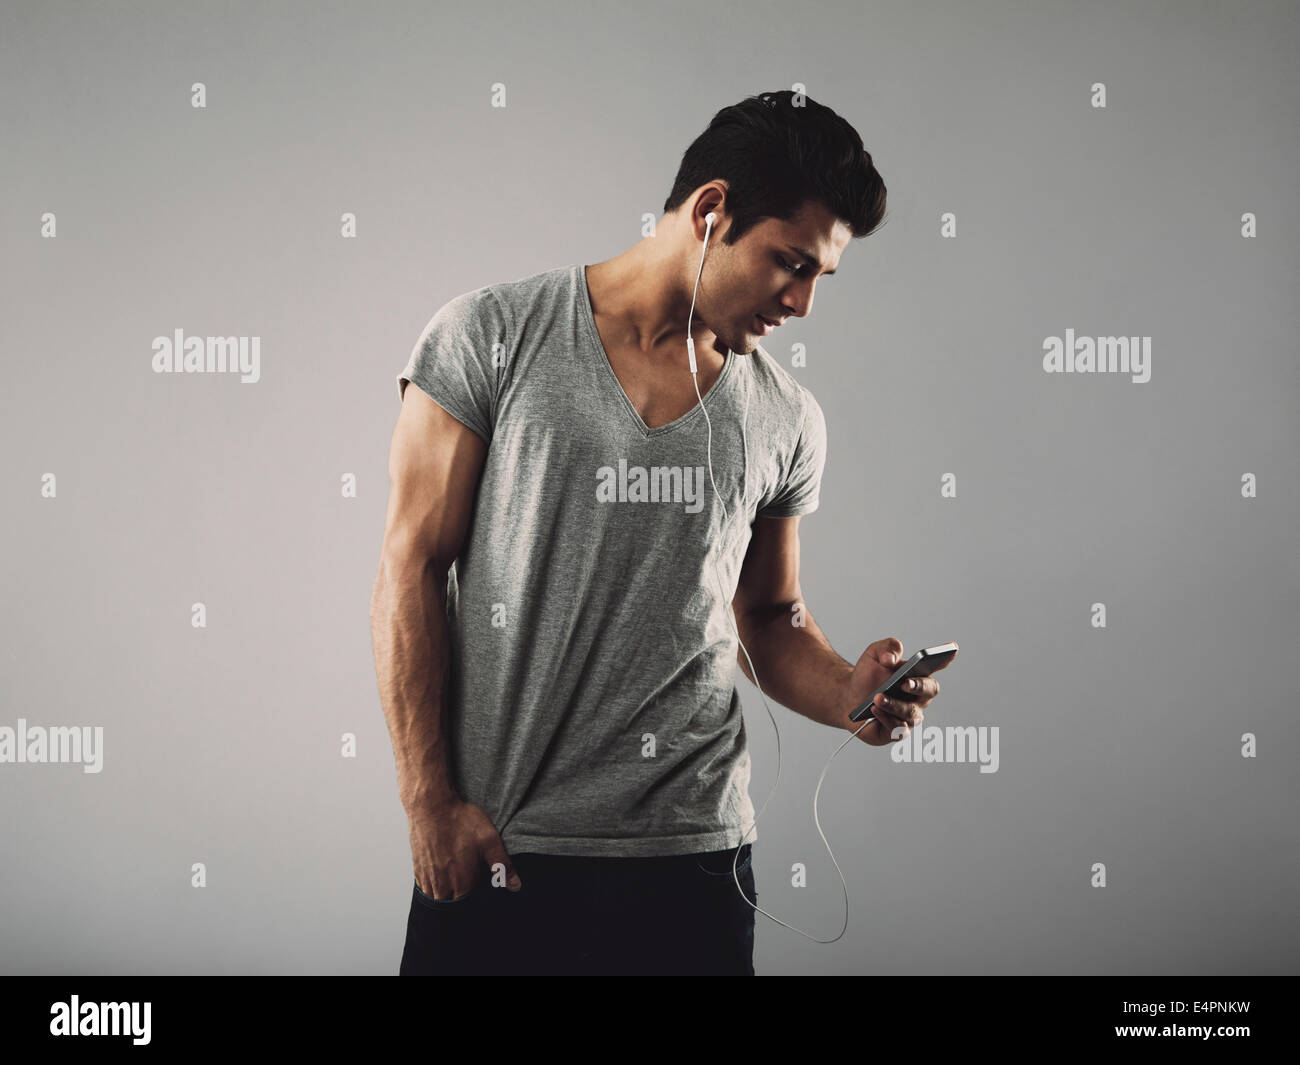 Handsome young man in casual t-shirt listening music on cell phone. Hispanic male model wearing earphones and listening - Stock Image